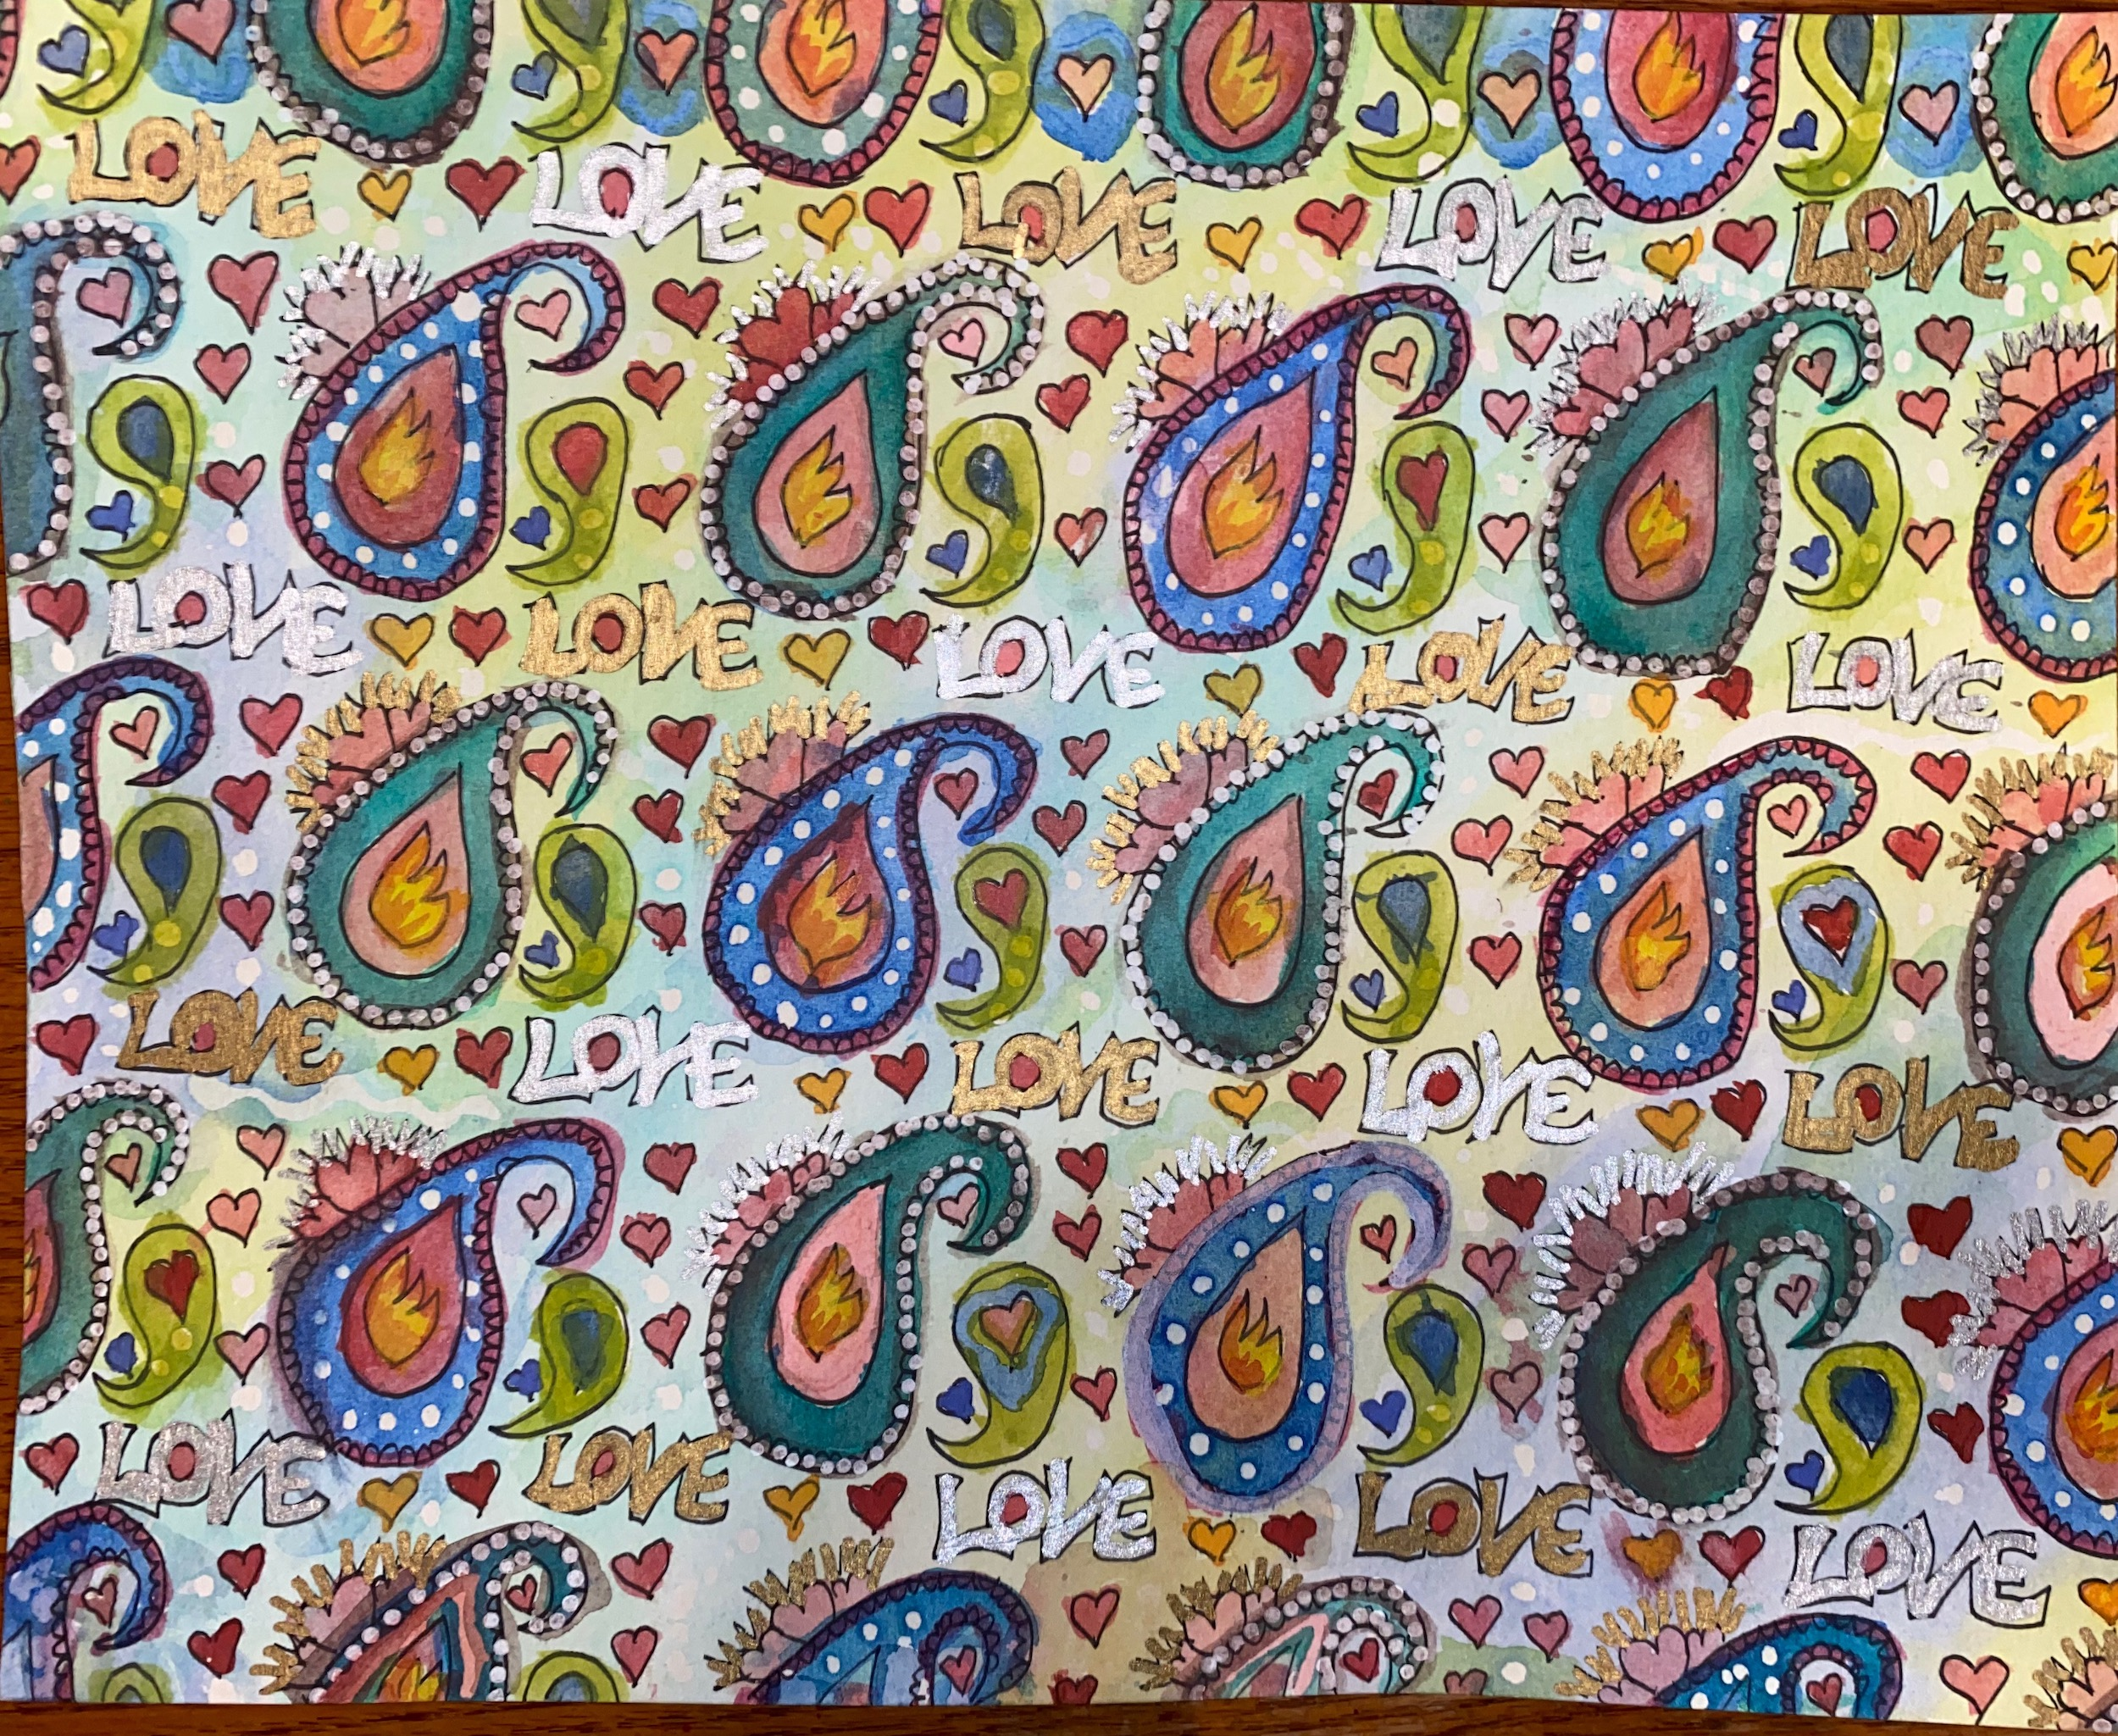 swiss repeat pattern of colorful paisleys helps one meditate on life, cracking open to let in more light